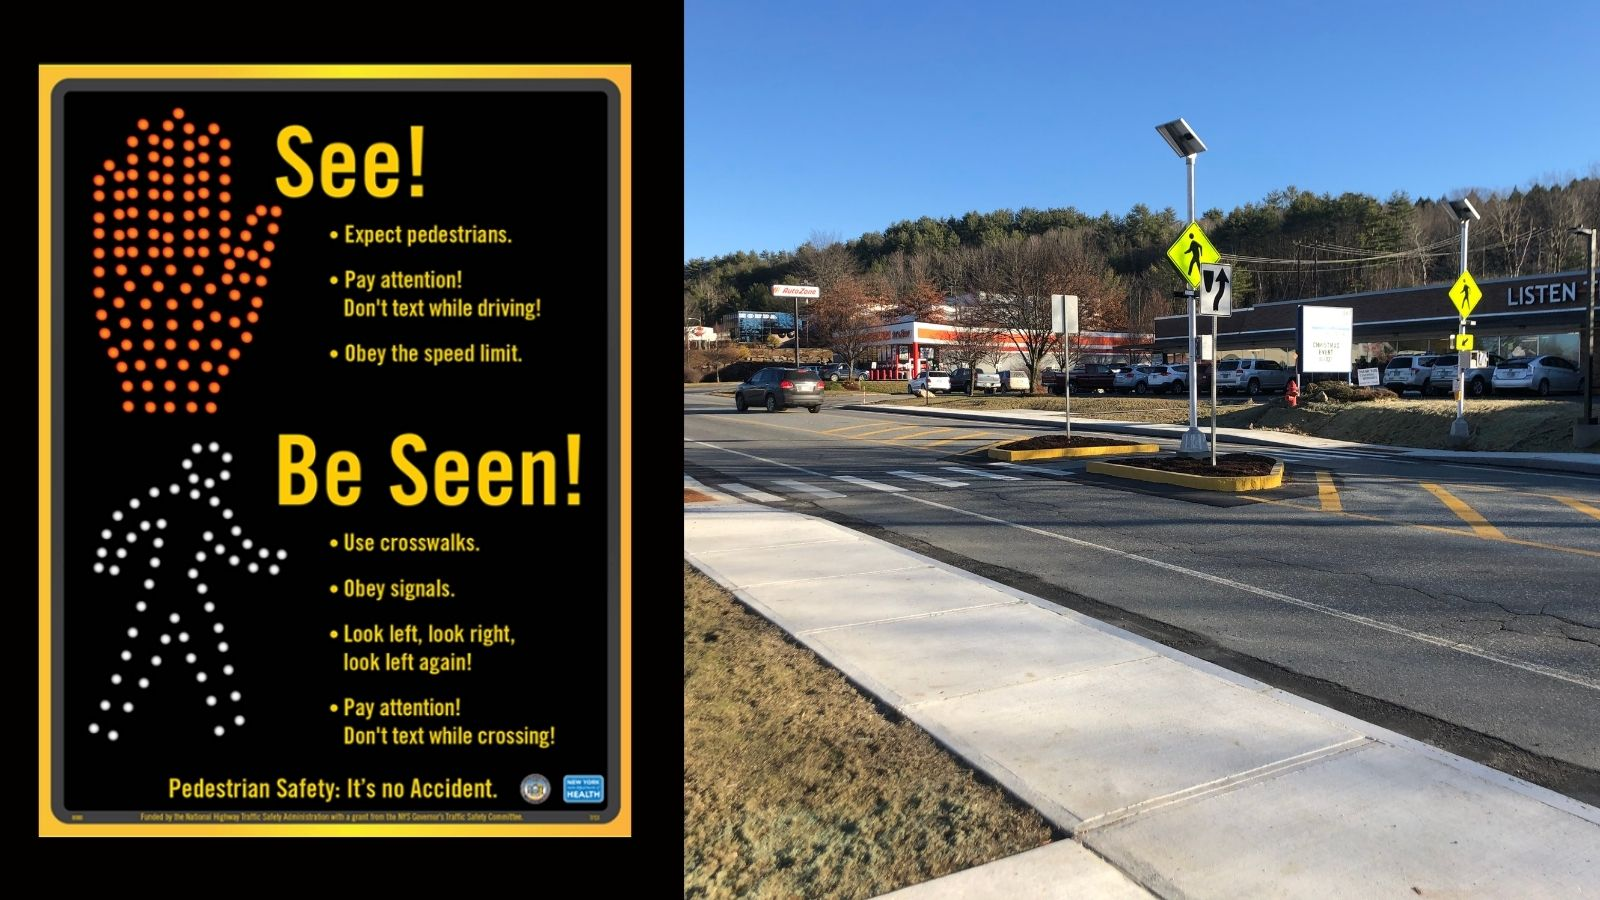 Winter Safety reminders with photo of Miracle Mile crosswalk